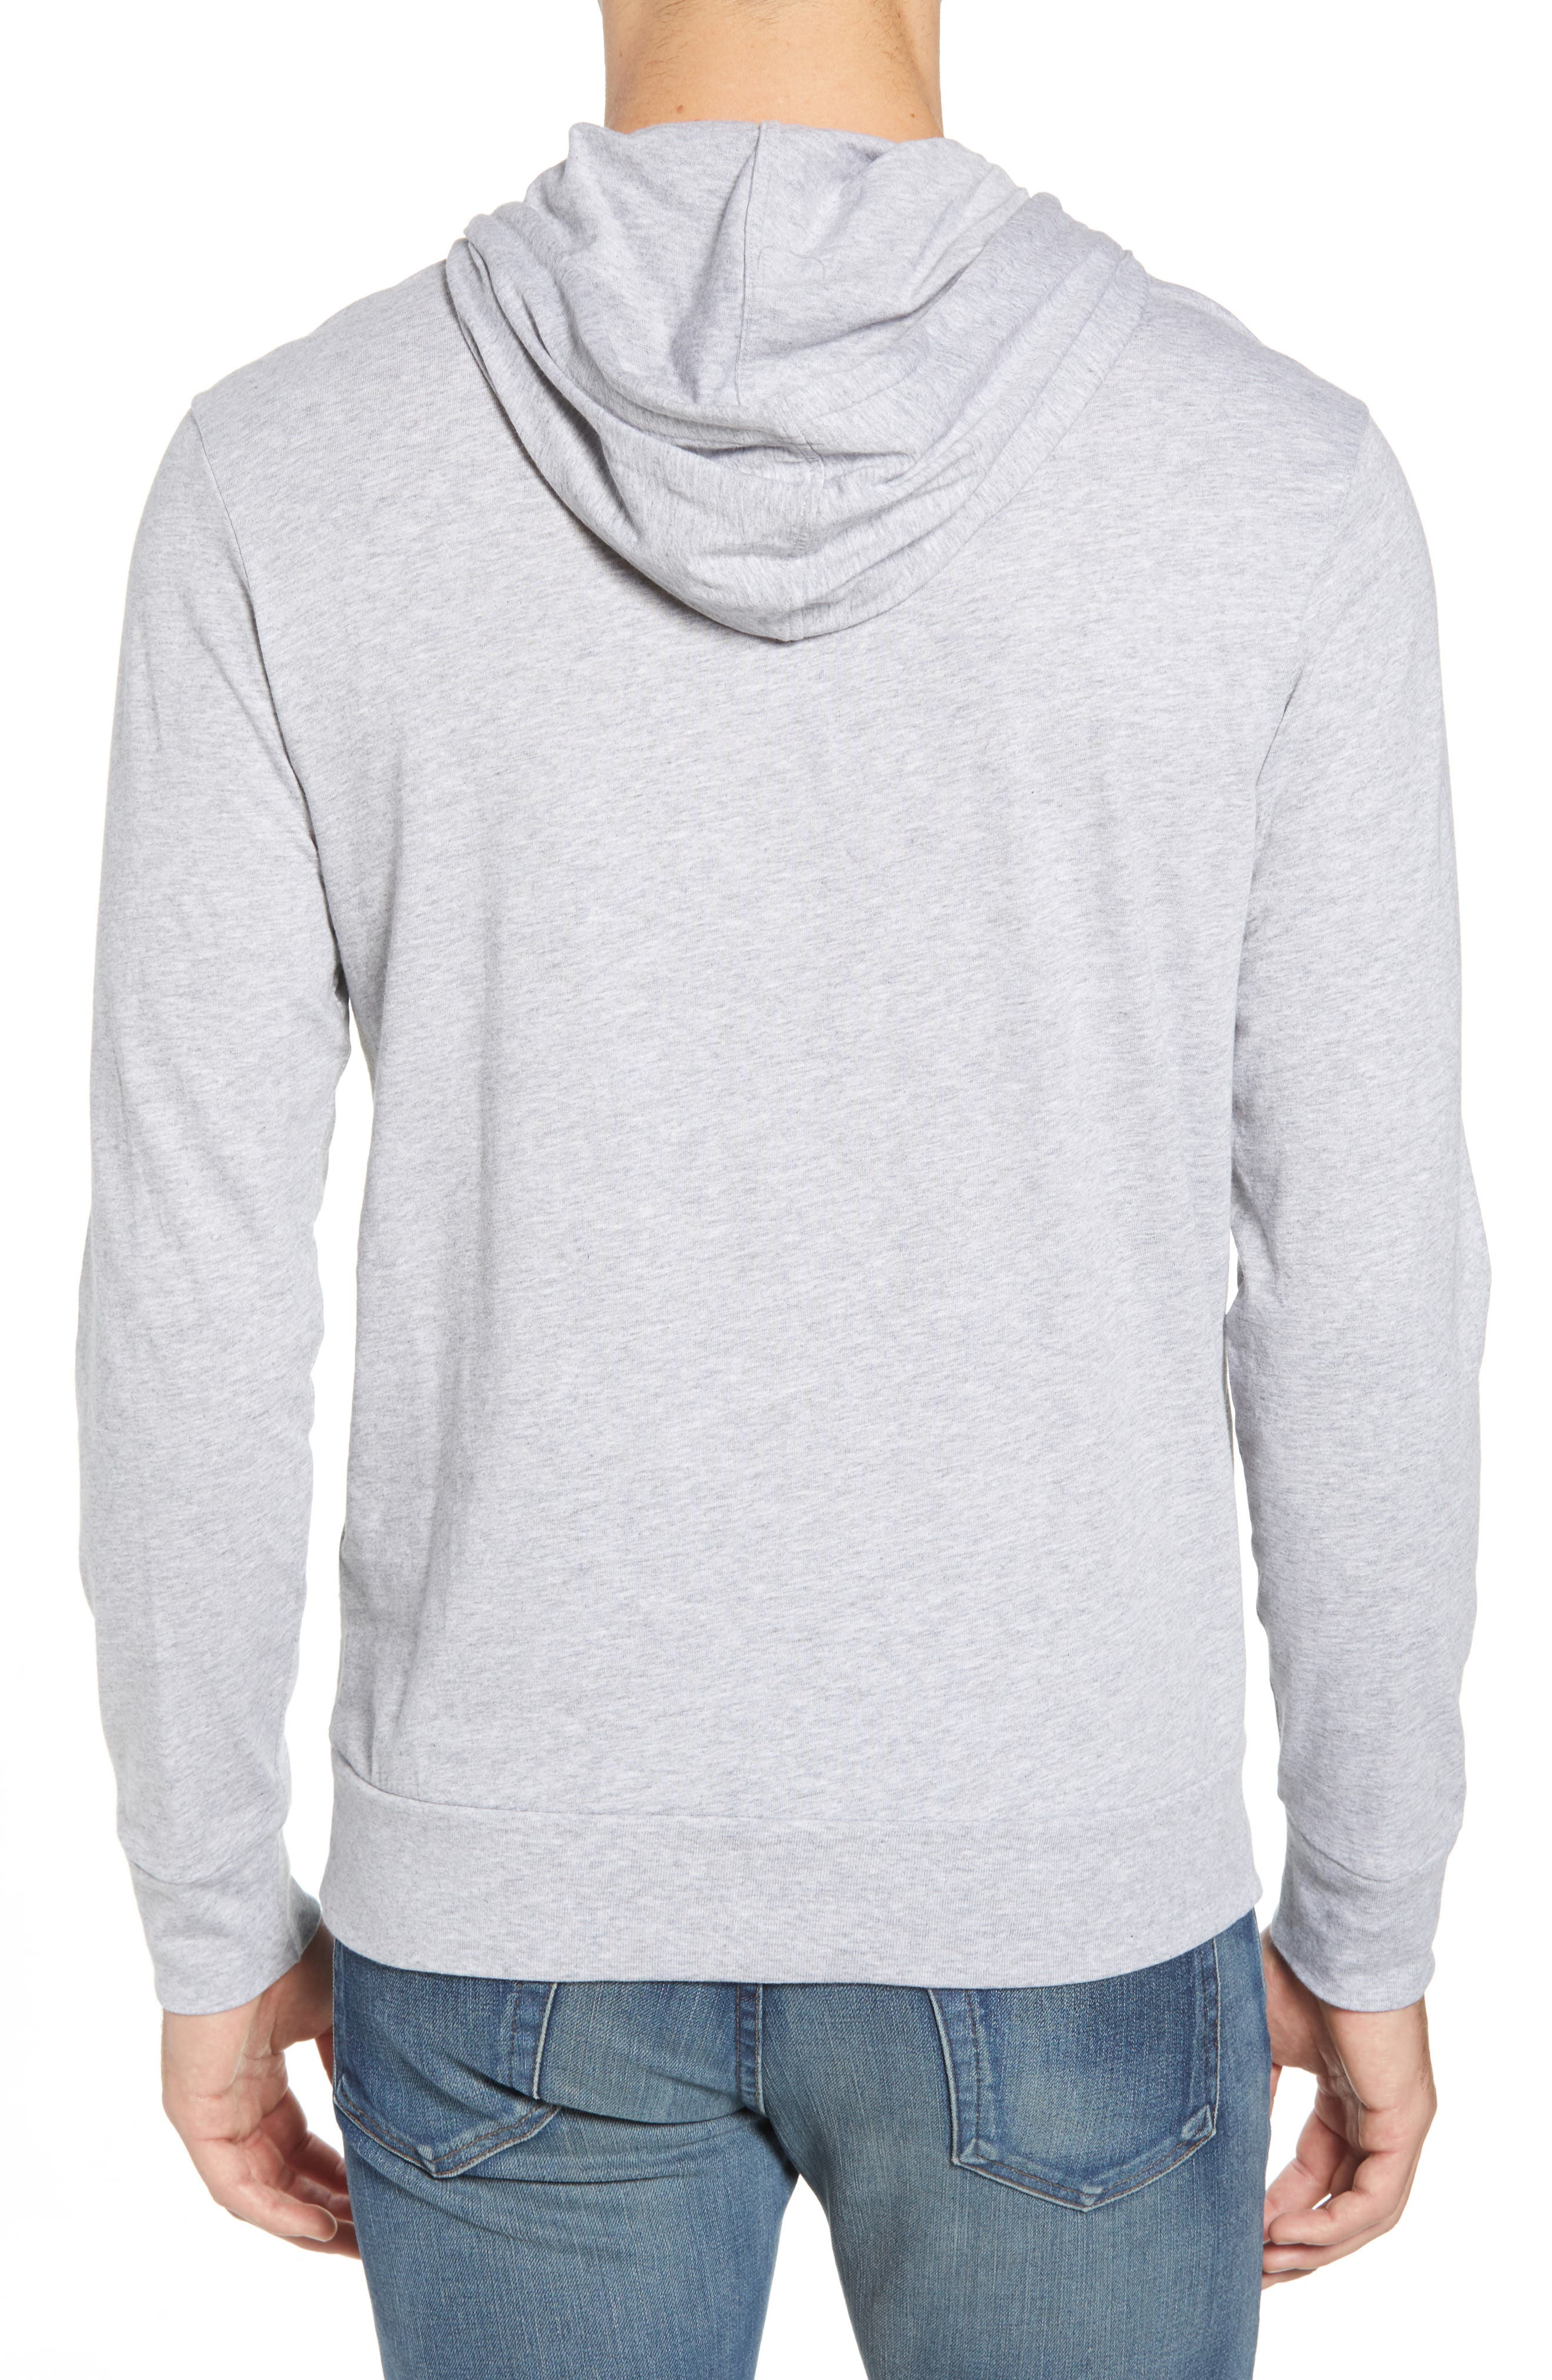 Pullover Hoodie,                             Alternate thumbnail 2, color,                             SILVER CHINE